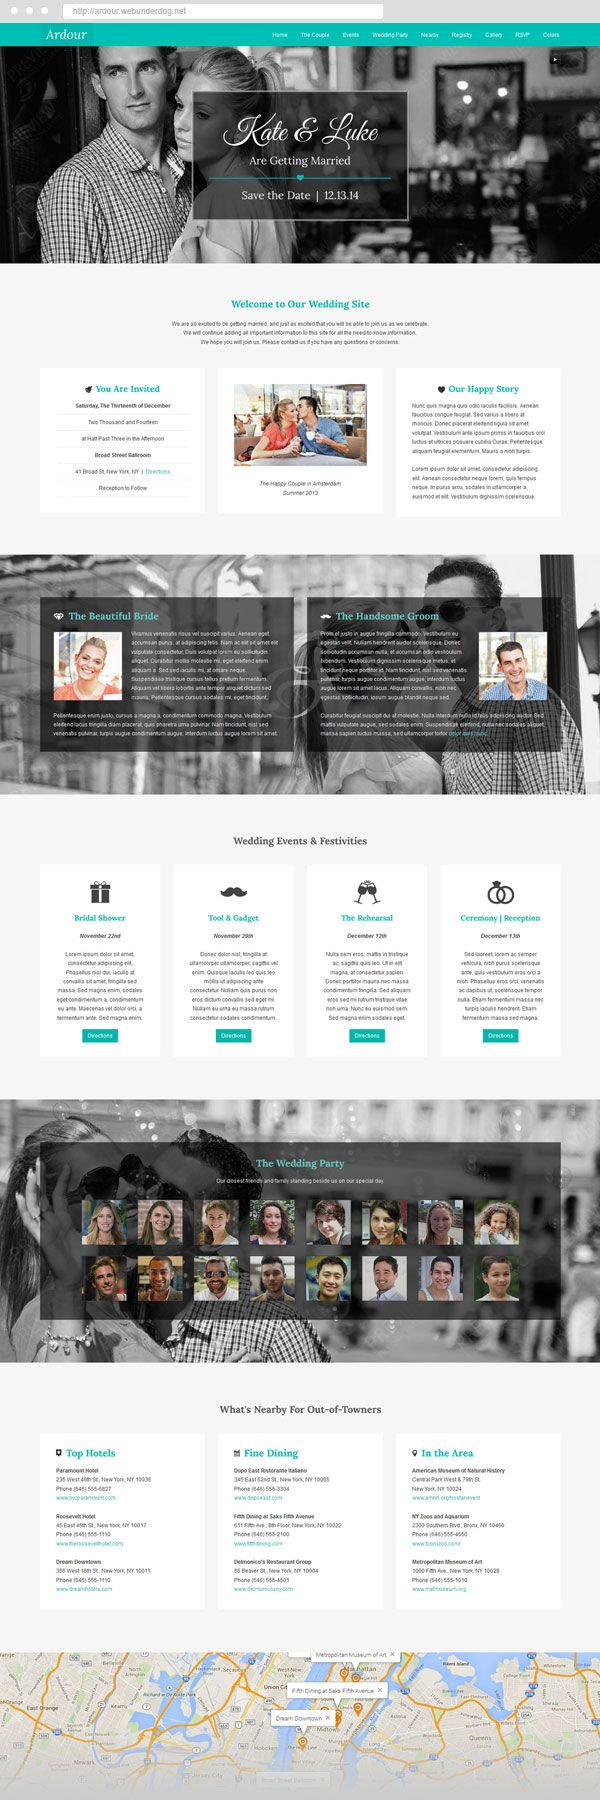 Ardour One Page #Joomla 3 #Wedding #Theme by webunderdog. #webdesign #template #onepage #landingpage #creative #inspiration #marriage #engagement #rsvp #invitiation